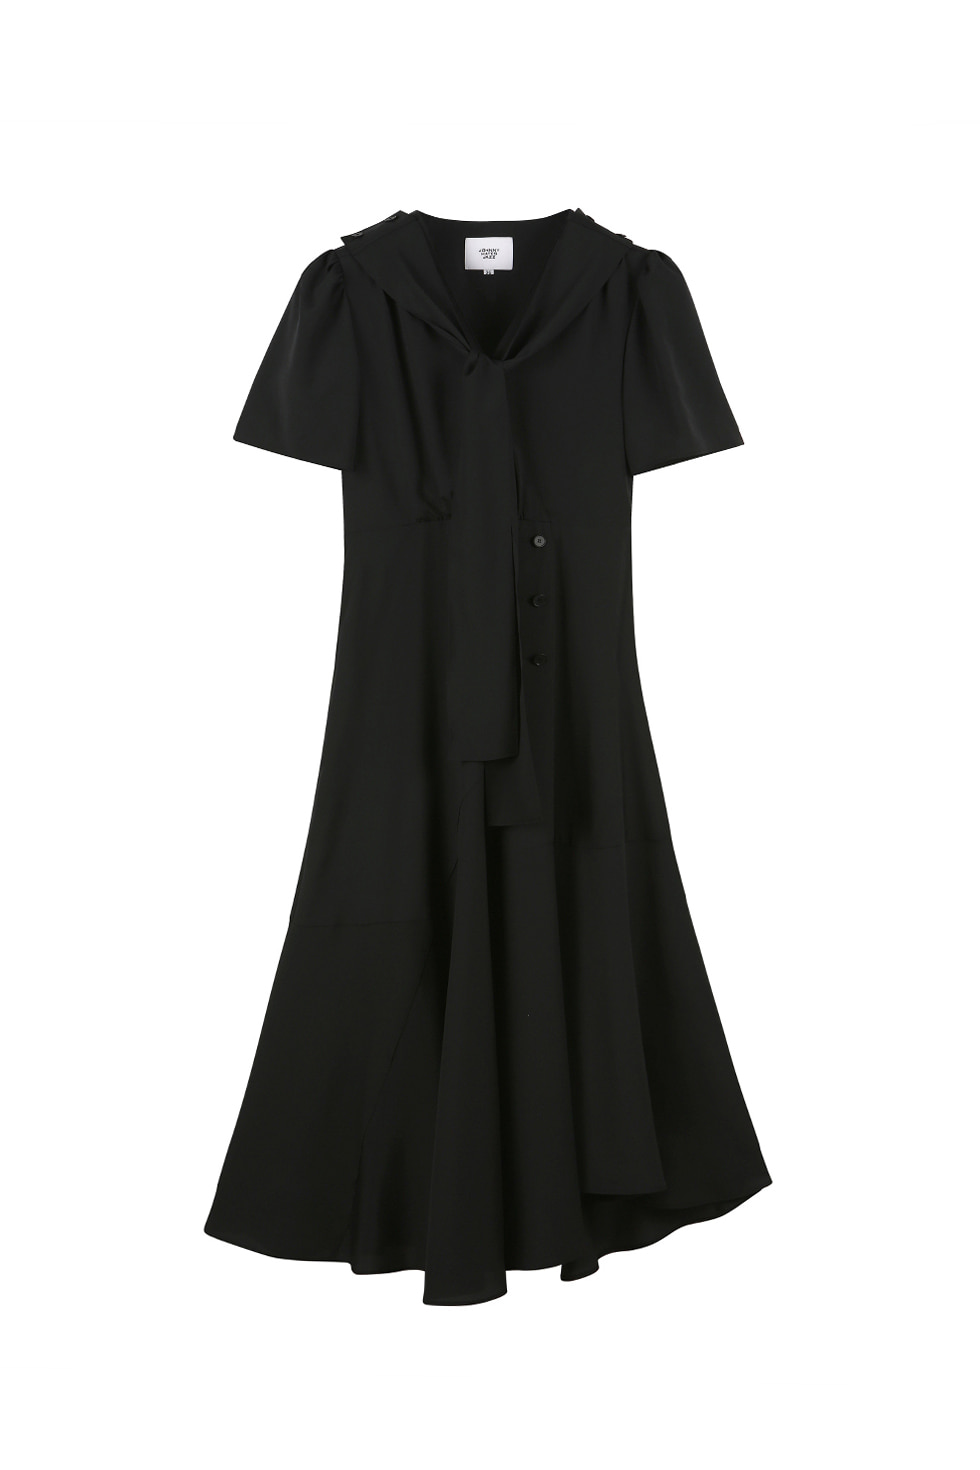 V NECK WRAP DRESS - BLACK